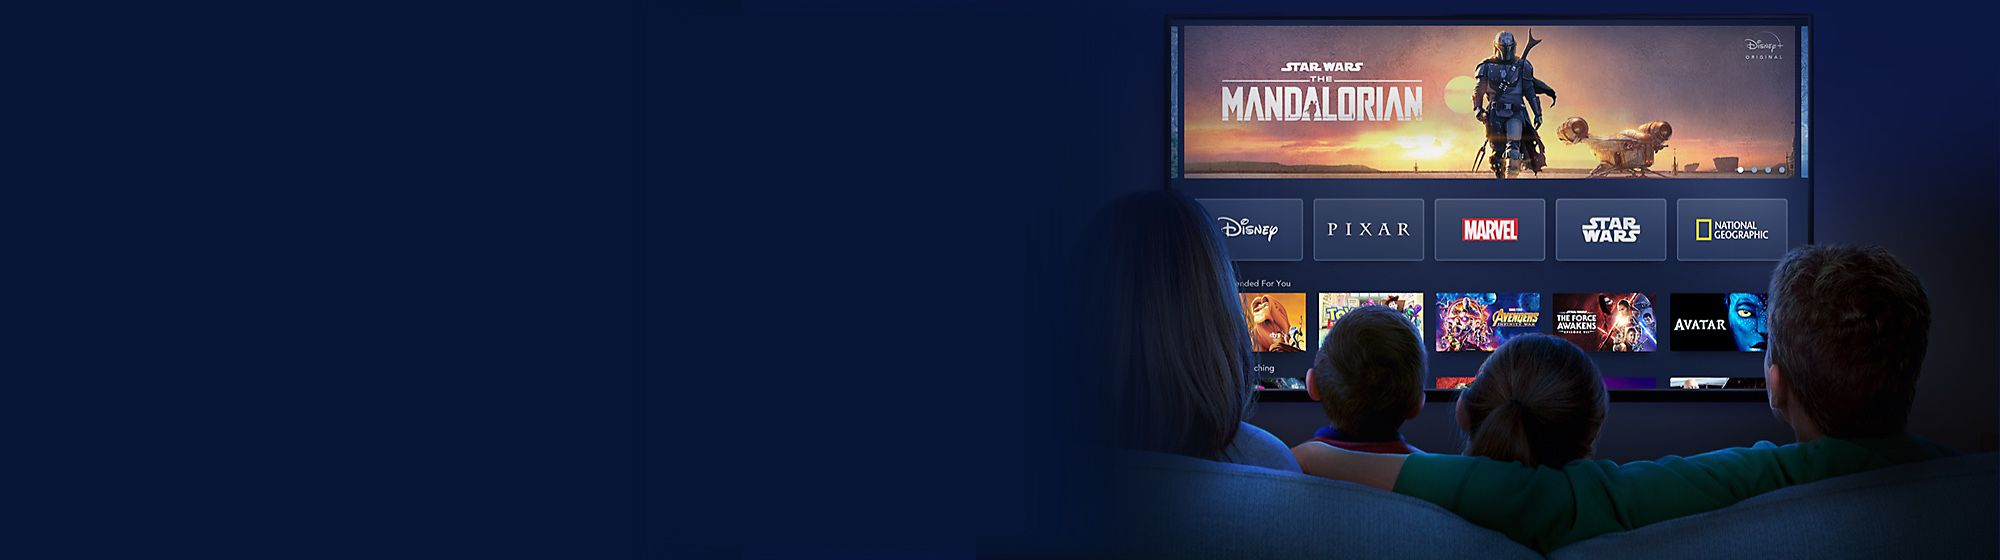 Disney+ Products Start Streaming March 24. £5.99 a month FIND OUT MORE